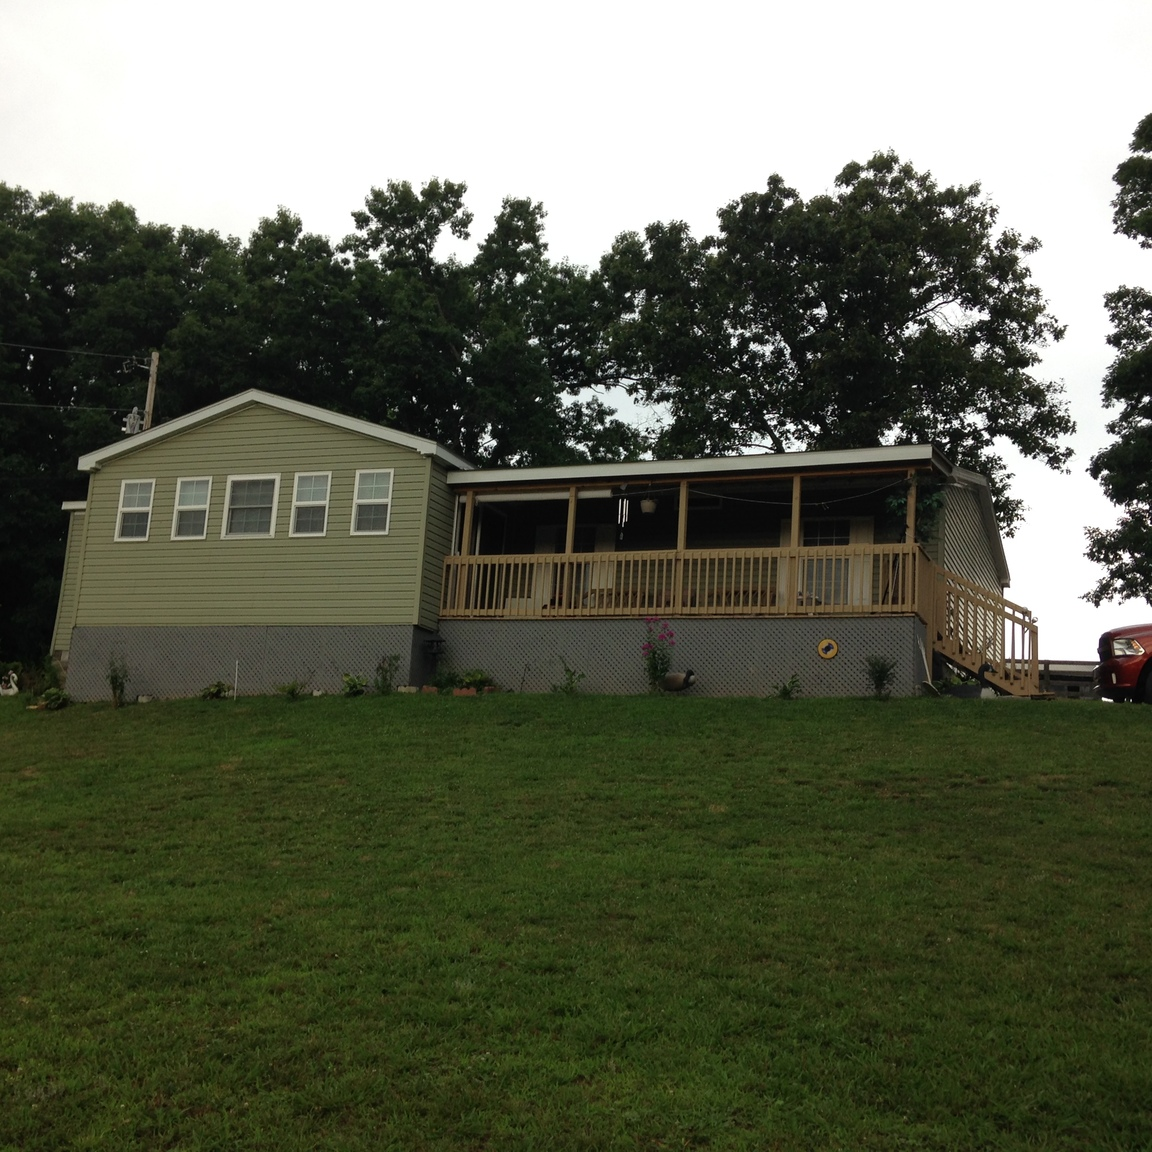 east bernstadt dating site 4880 n us highway 25, east bernstadt, ky is a 1790 sq ft, 3 bed, 2 bath home listed on trulia for $215,000 in east bernstadt, kentucky.